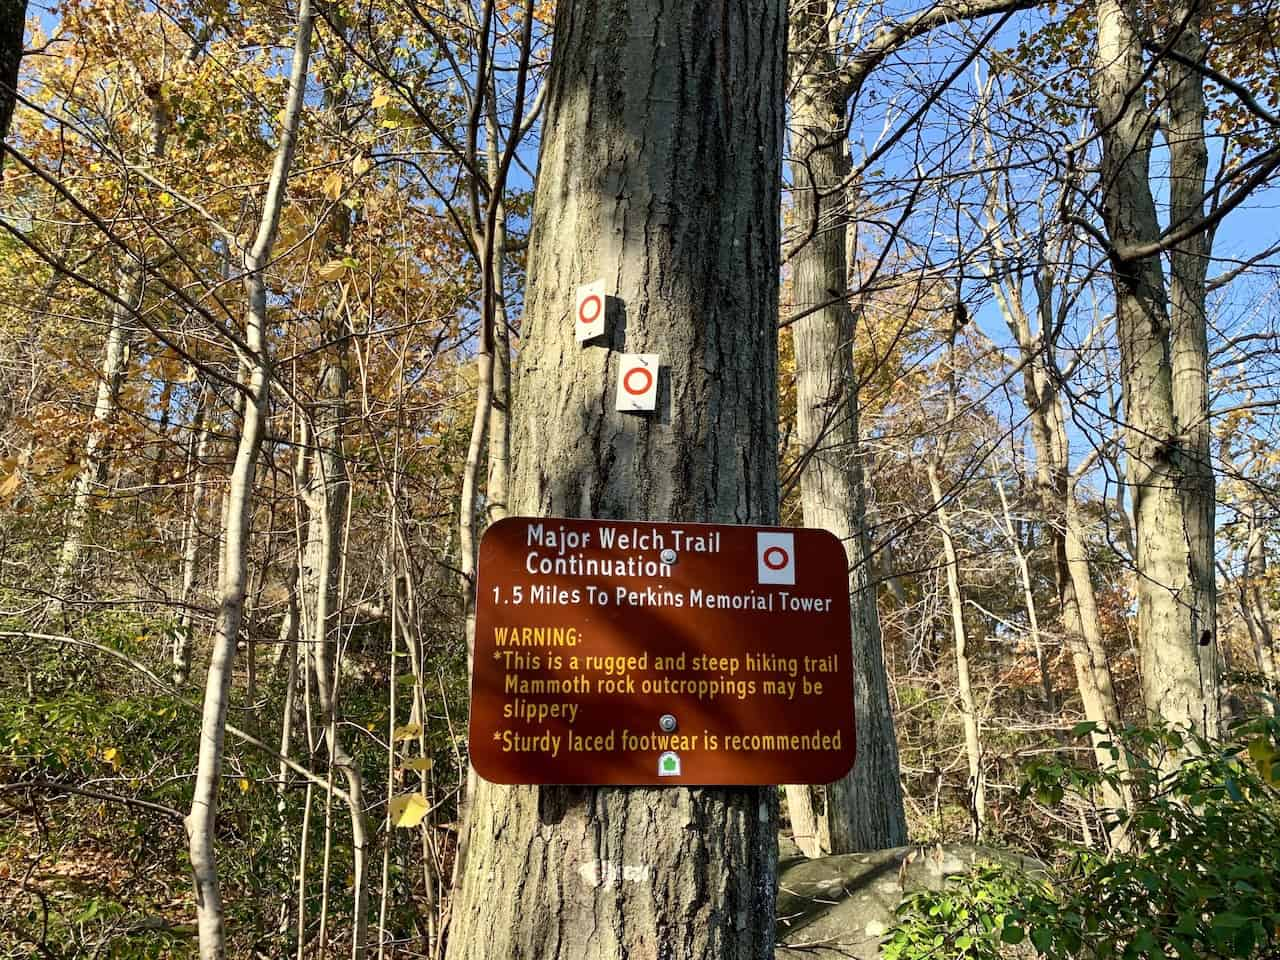 Major Welch Trail Sign